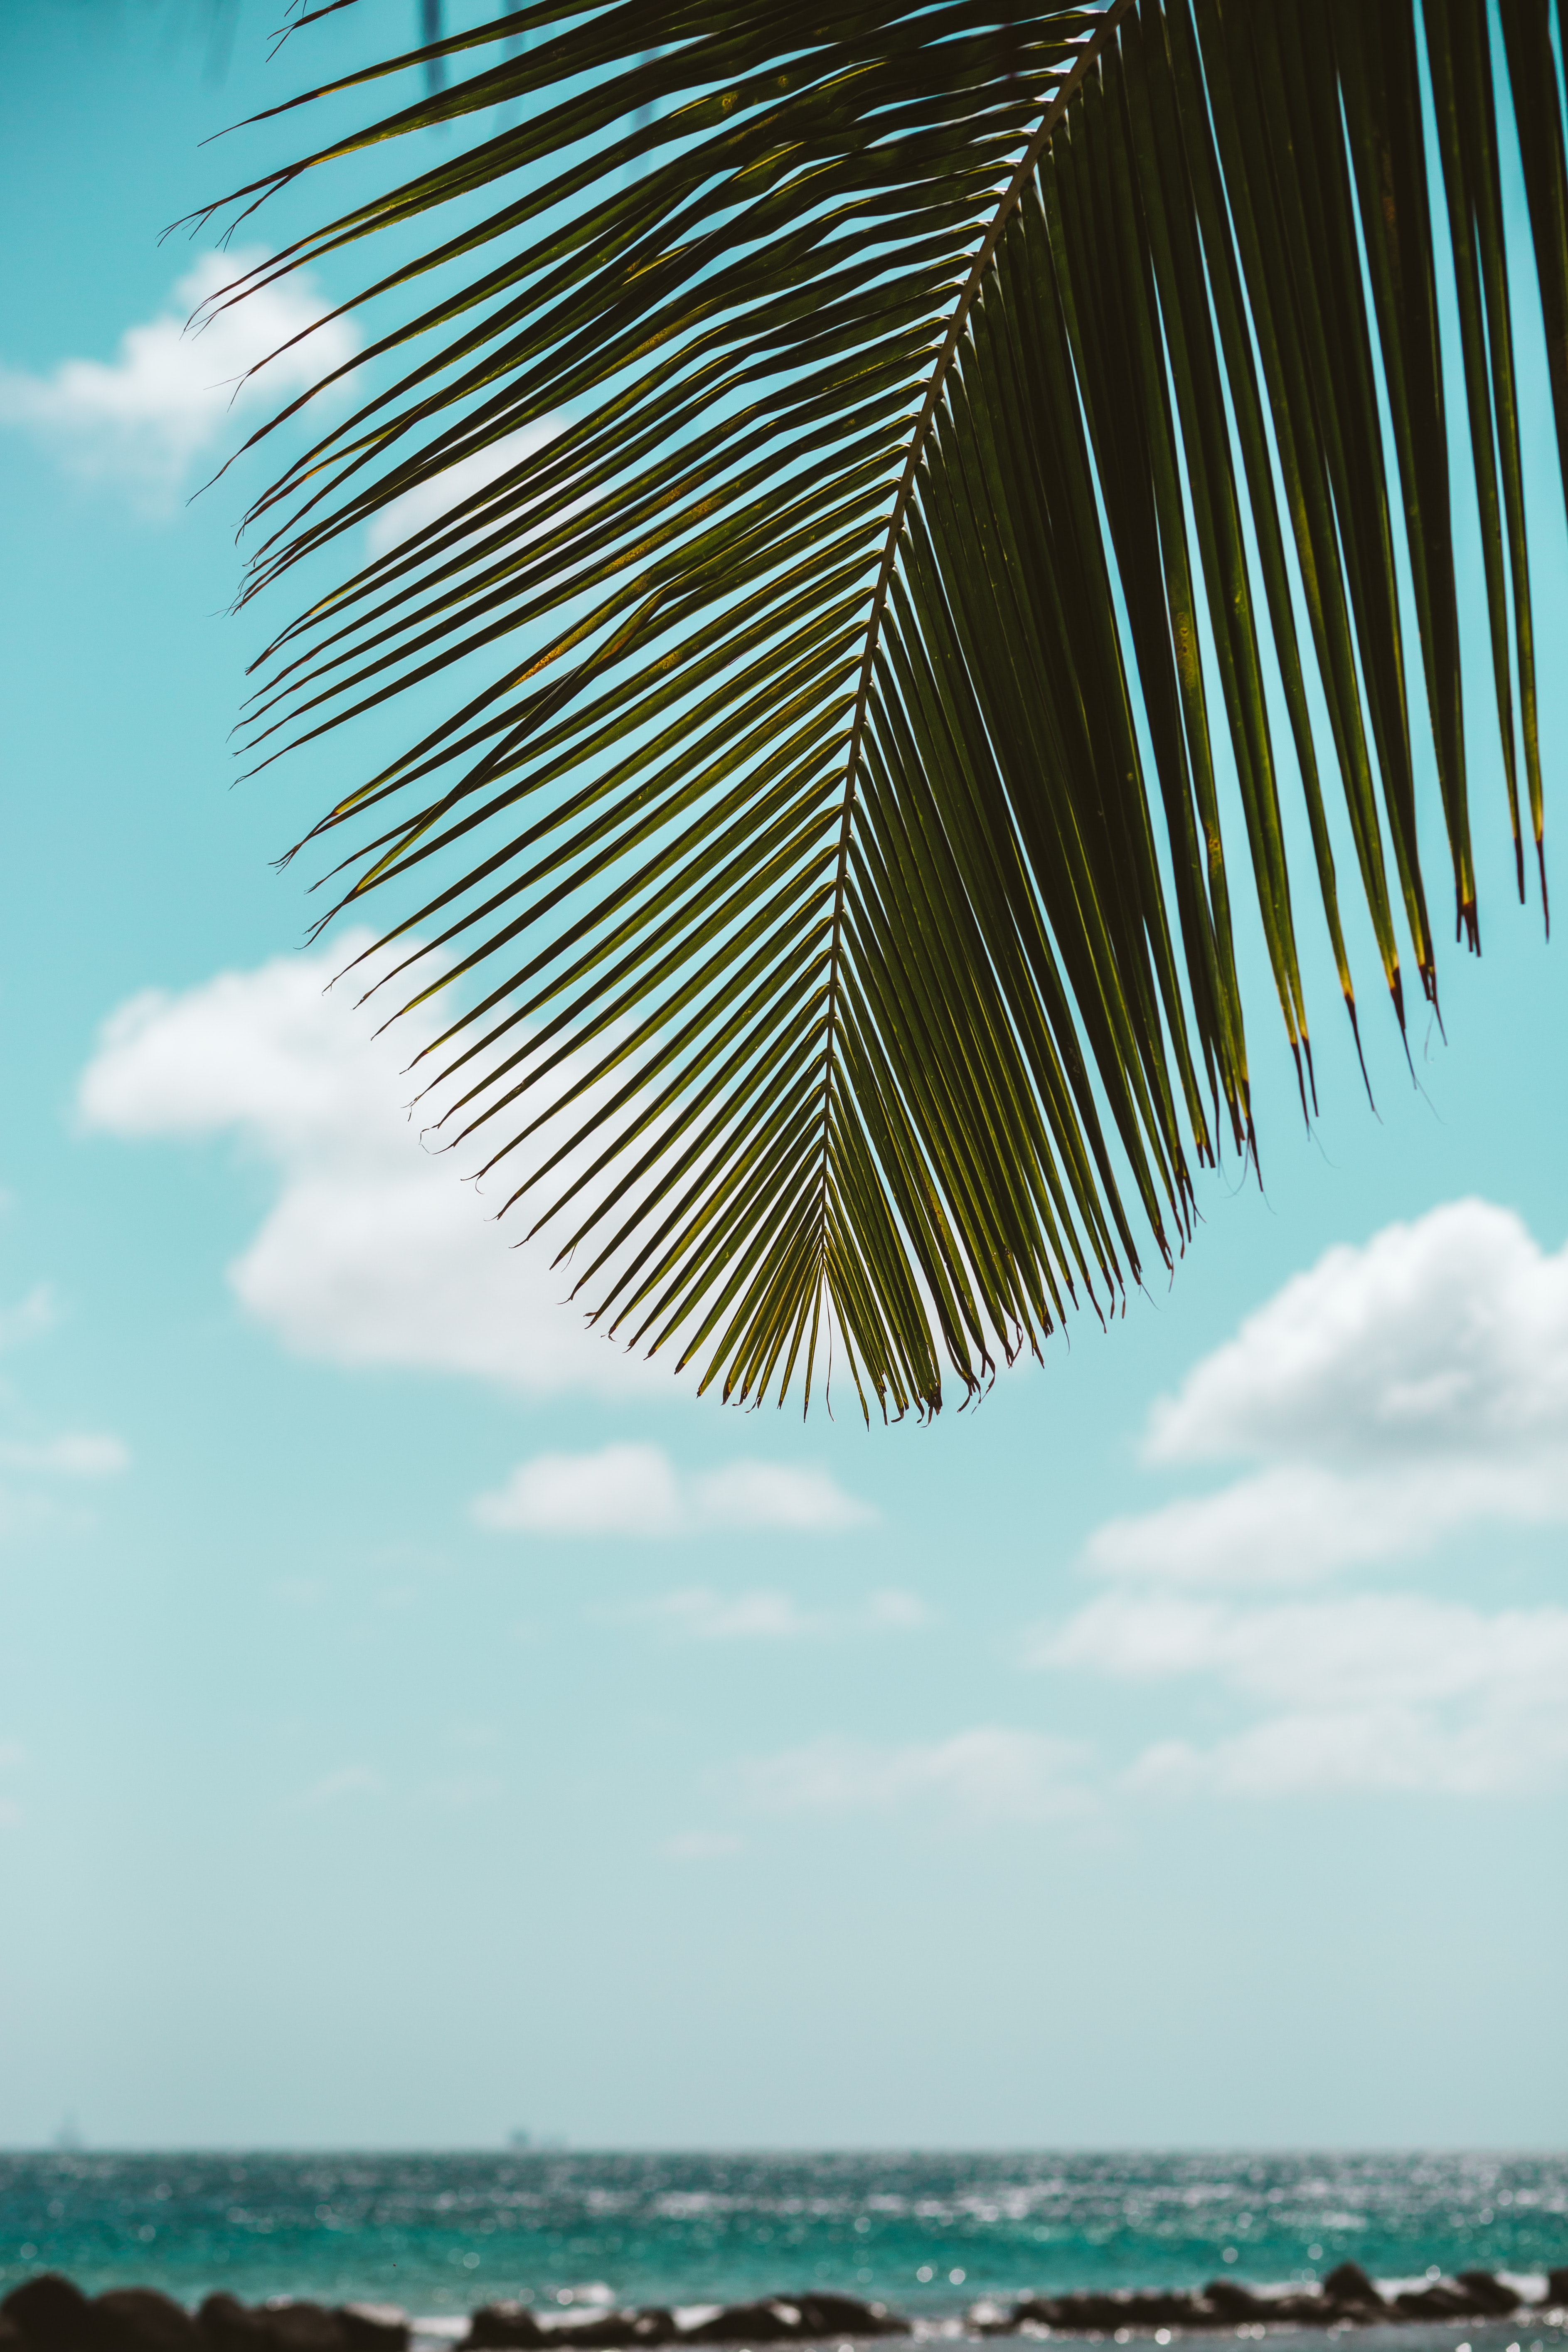 84156 download wallpaper Nature, Palm, Leaves, Sea, Beach, Tropics screensavers and pictures for free